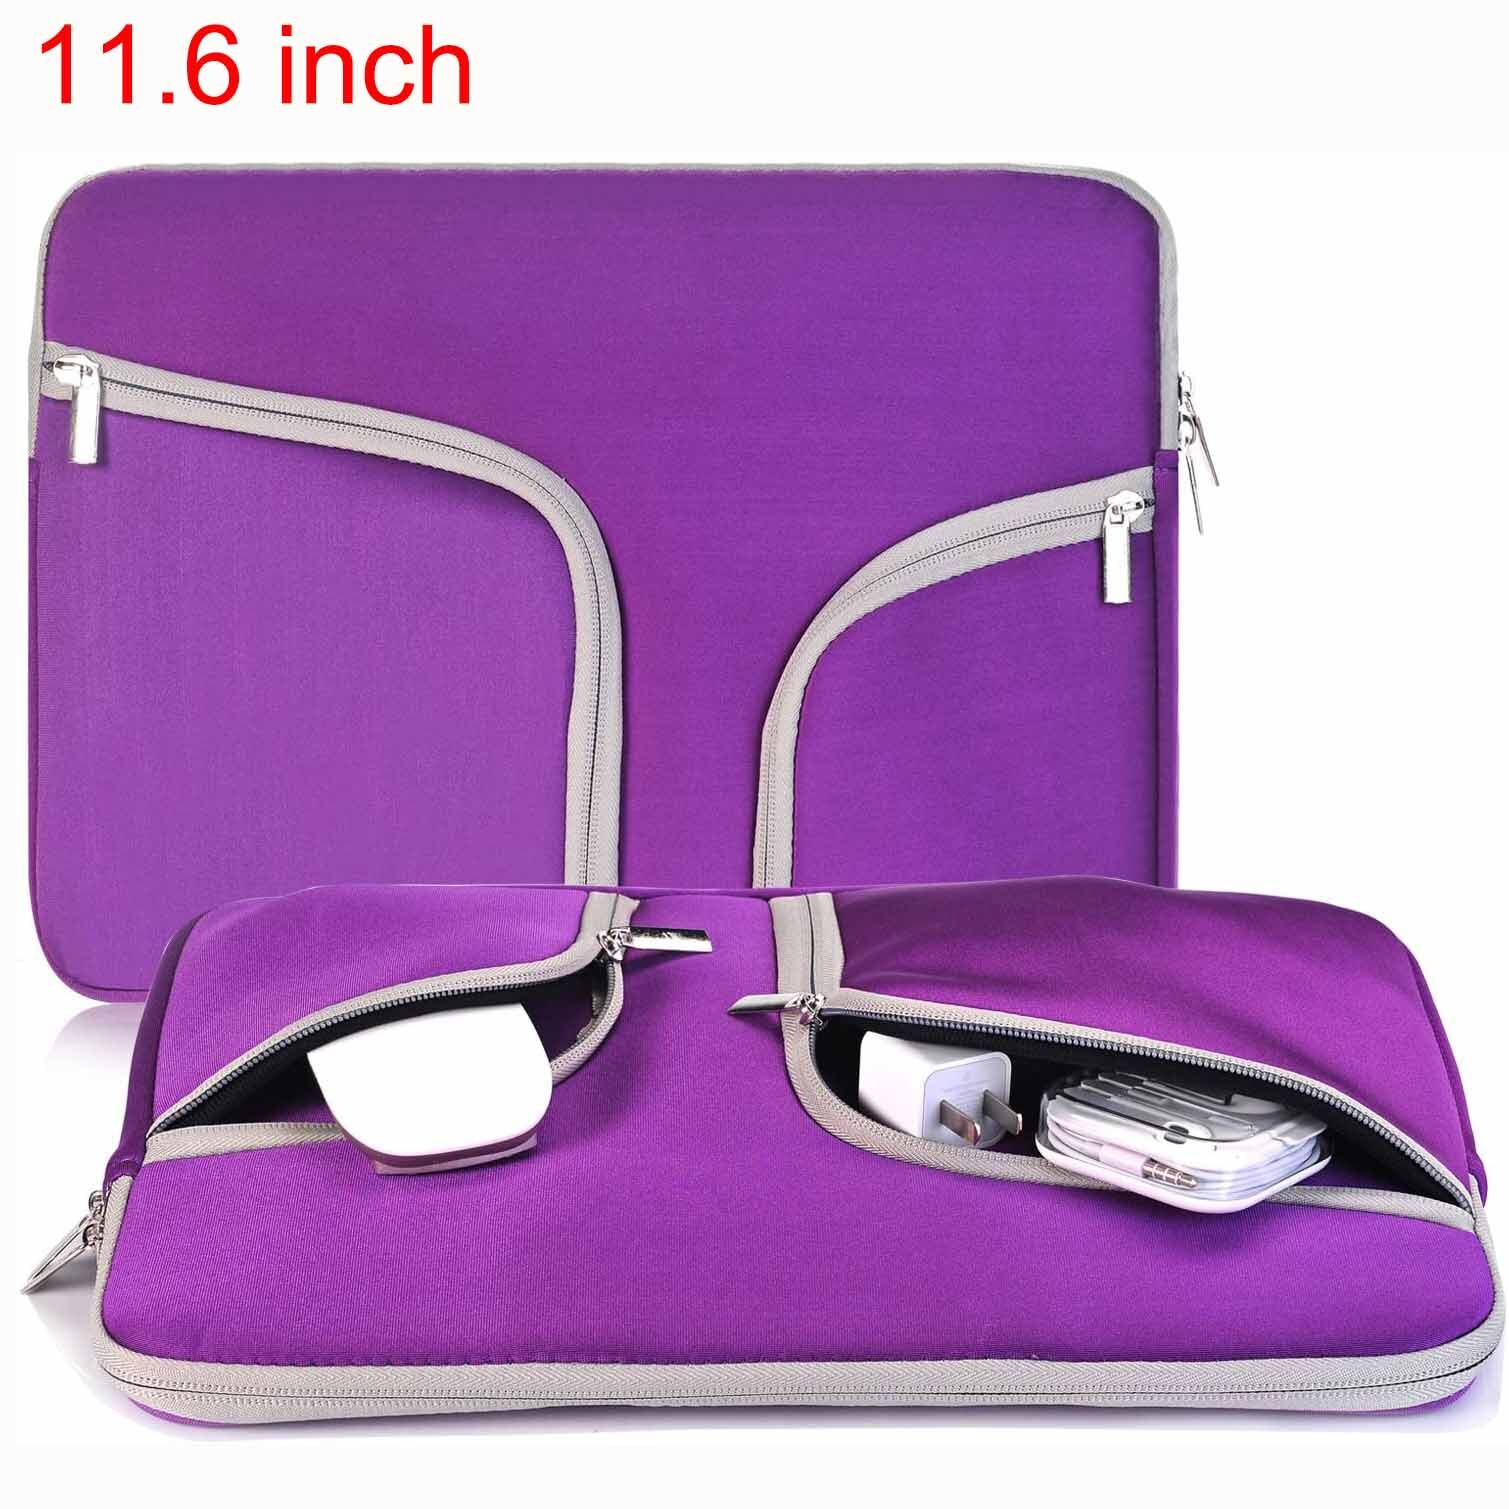 Laptop Sleeve Case 11.6-12.3 Inch, Water-Resistant Protective Bag Compatible Mac Air 11, Mac 12 Retina, Ipad Tablet, Surface Pro 3 4 5 6, Chromebook 11, Notebook Carrying Case.